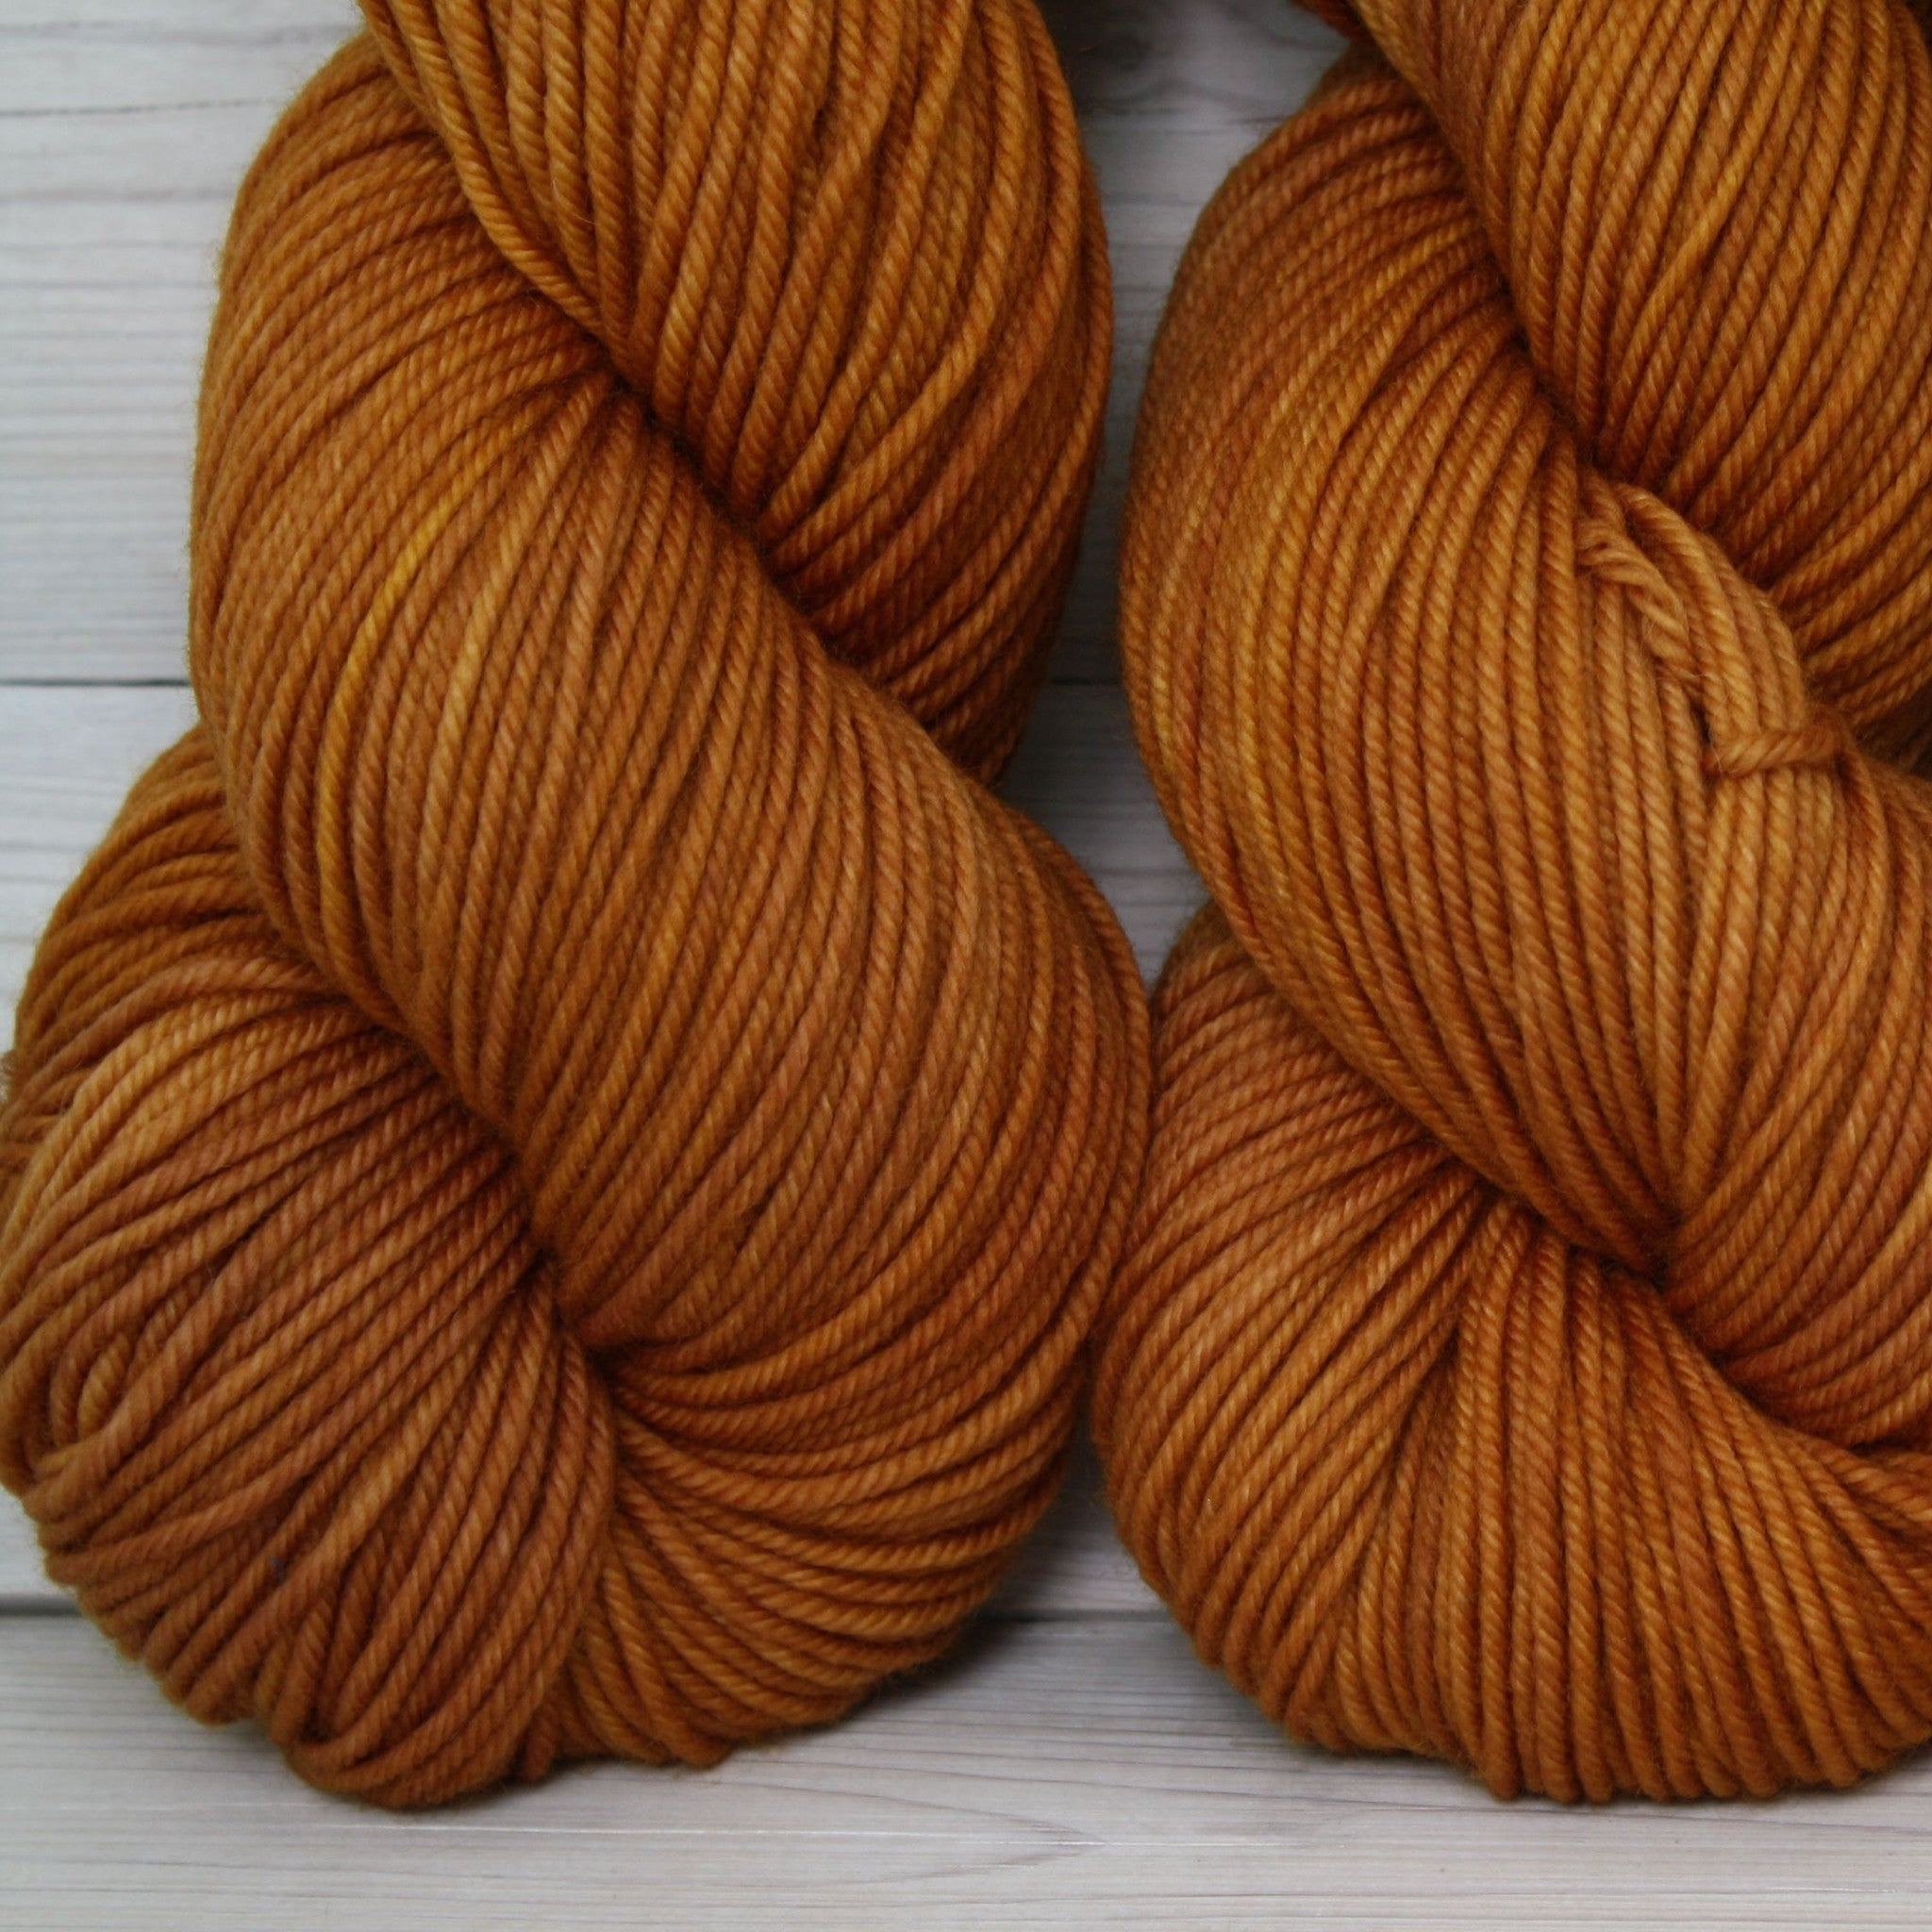 Calypso Yarn | Colorway: Spiced Cider